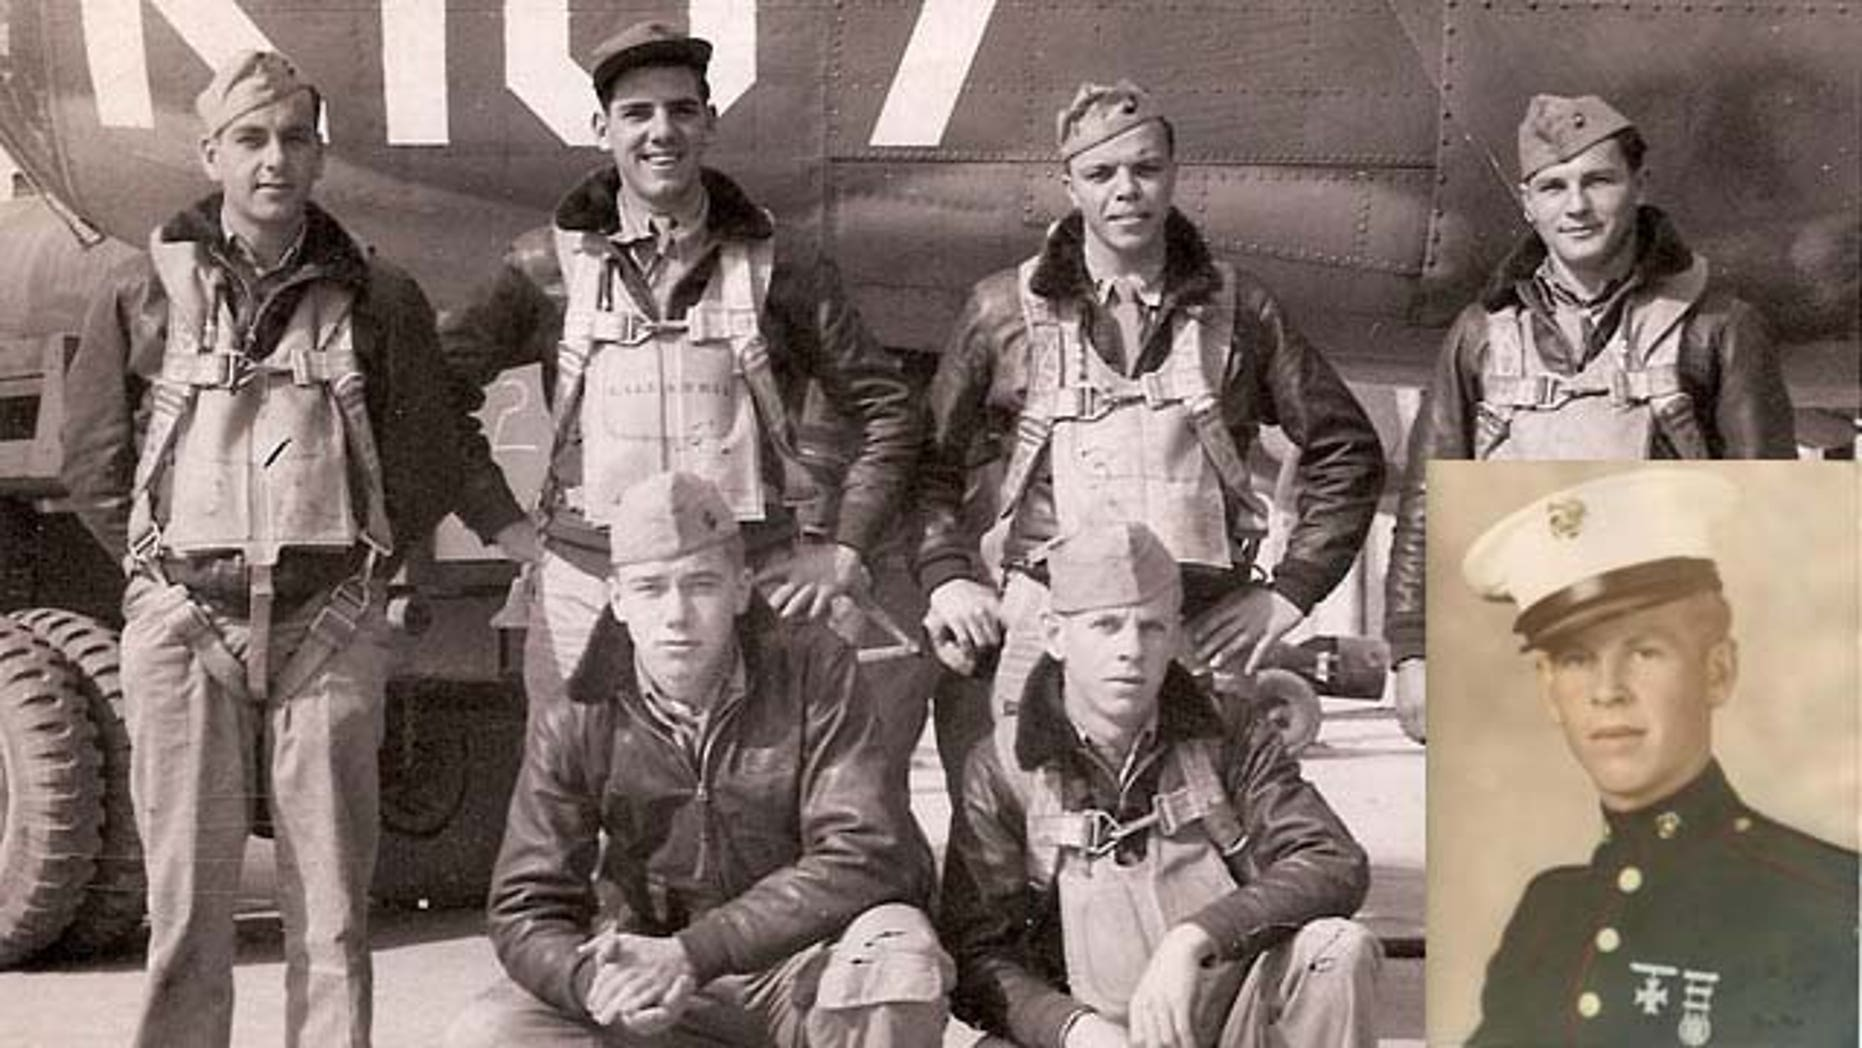 John Donovan, seen on right on the bottom row of the group picture, went missing in action after a flight mission in the south Pacific. His remains will be laid to rest on Friday.